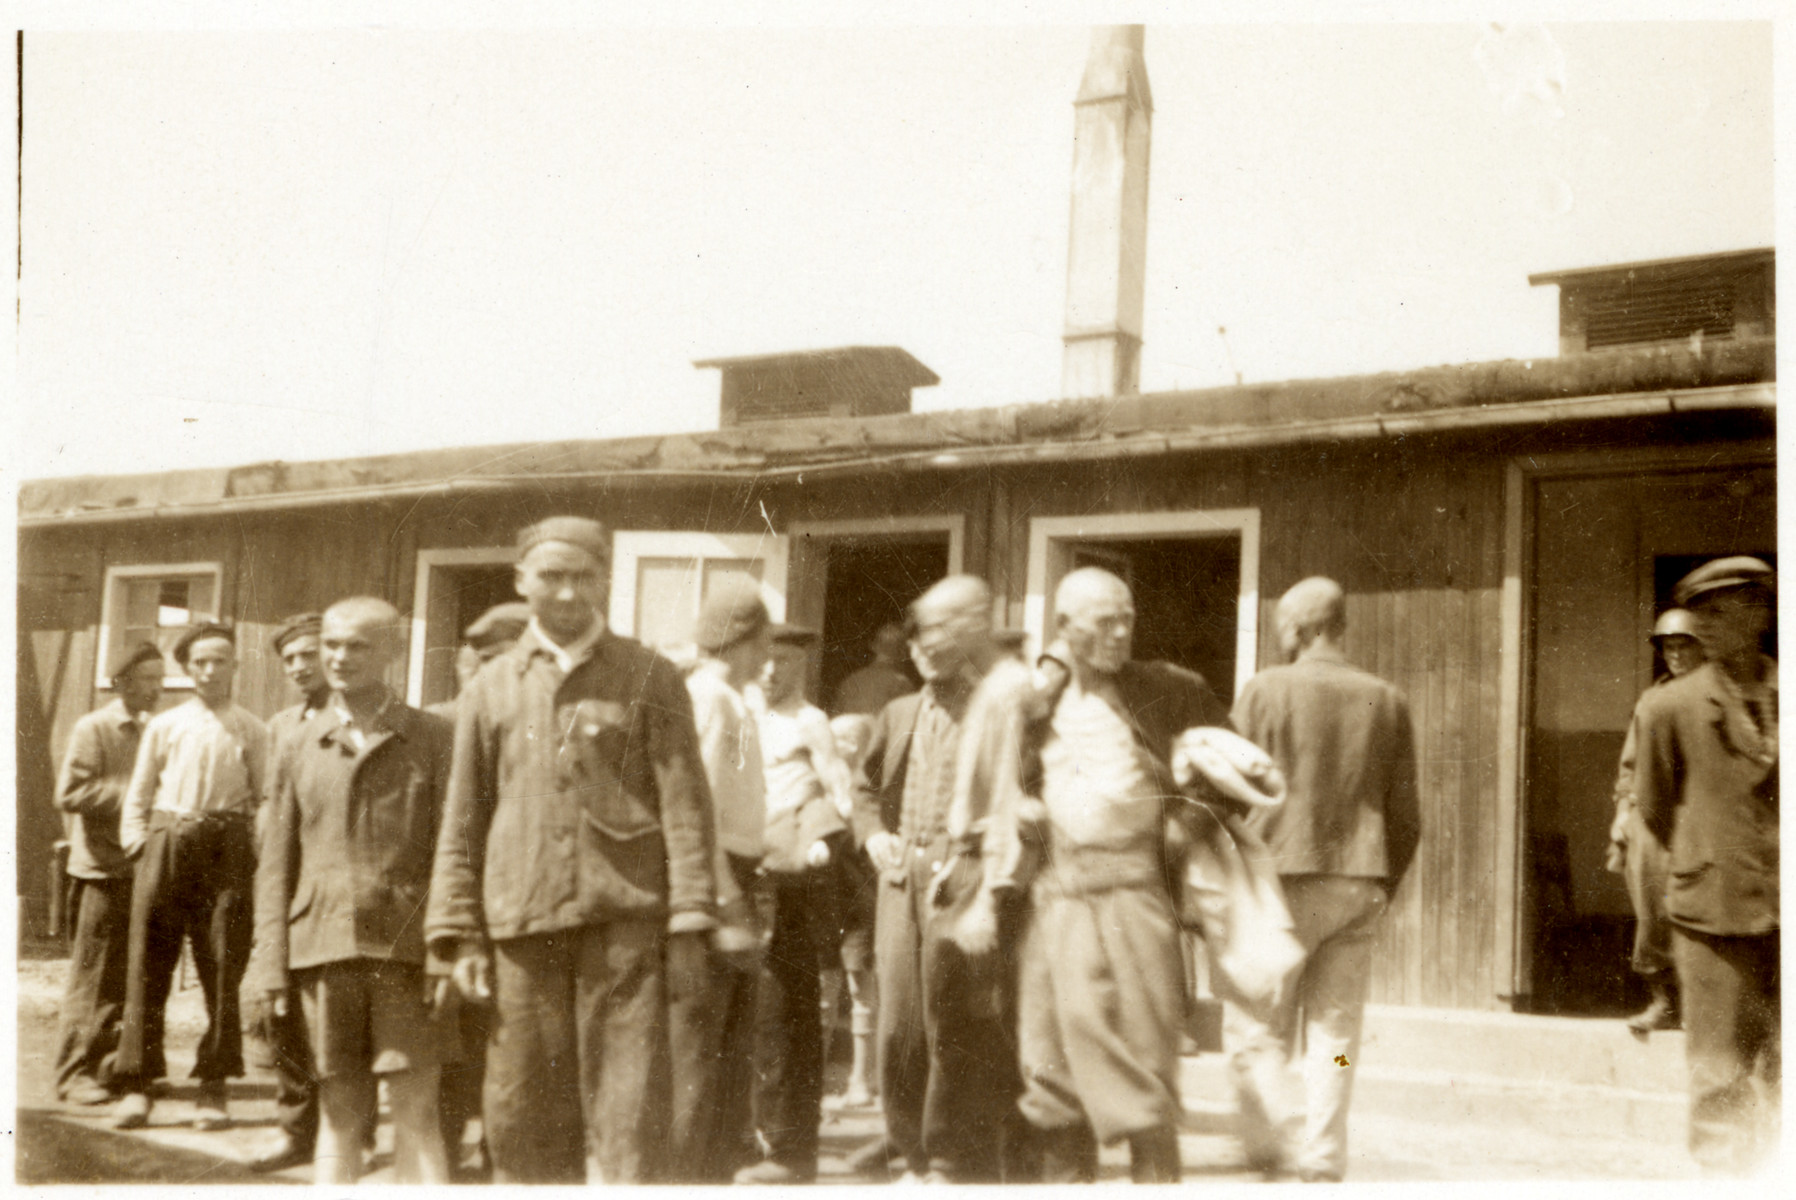 Group portrait of survivors of the Gusen concentration camp standing in front of a barracks.  Standing third from left may be Rubin Szpitalnik who was born Warsaw. and deported to Auschwitz from Paris.